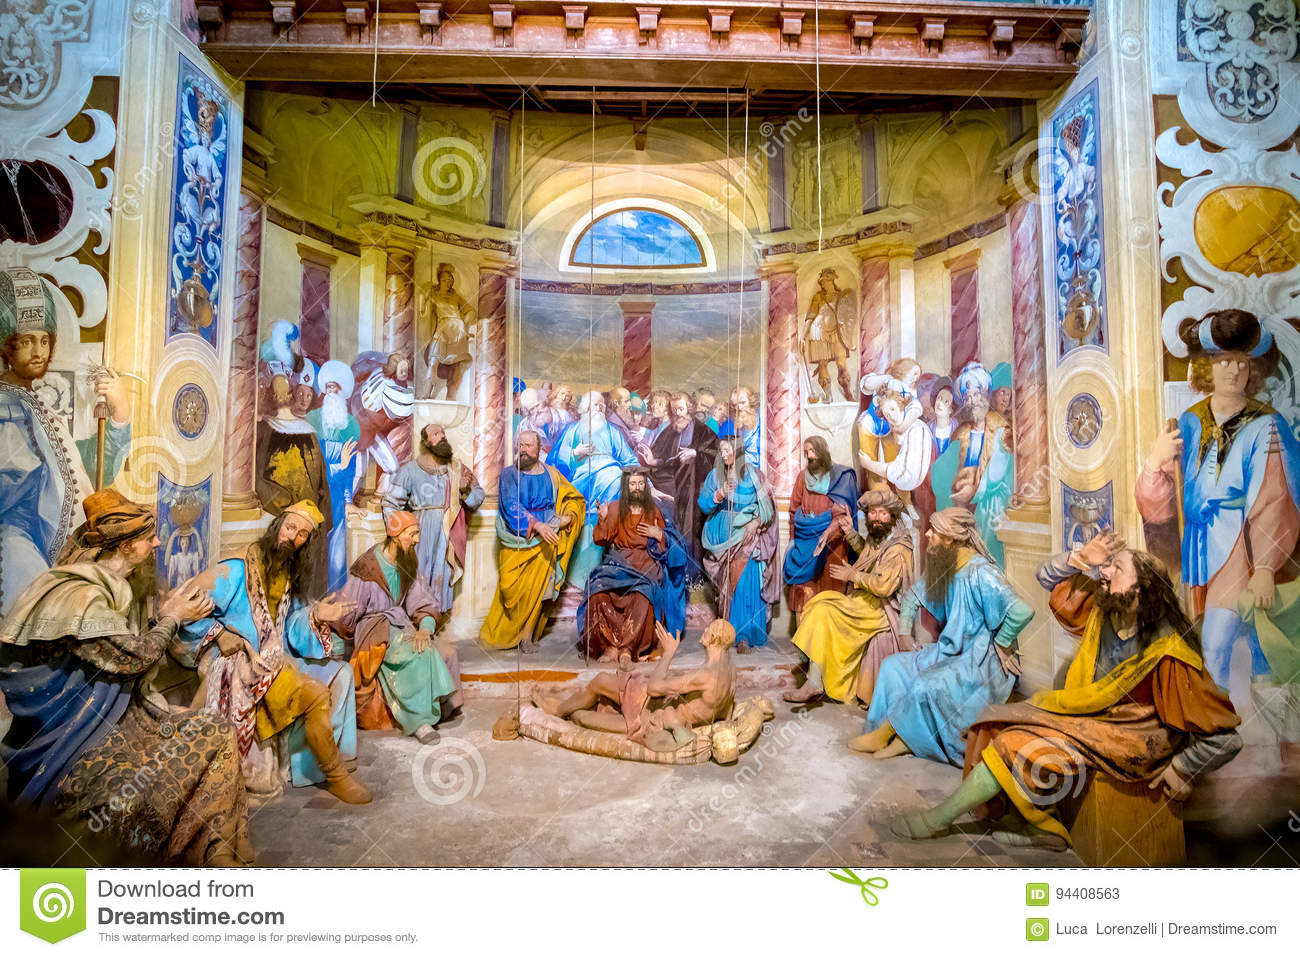 Biblical Character Scene Representation Of Jesus Christ Making A Miracle Healing Paralytic